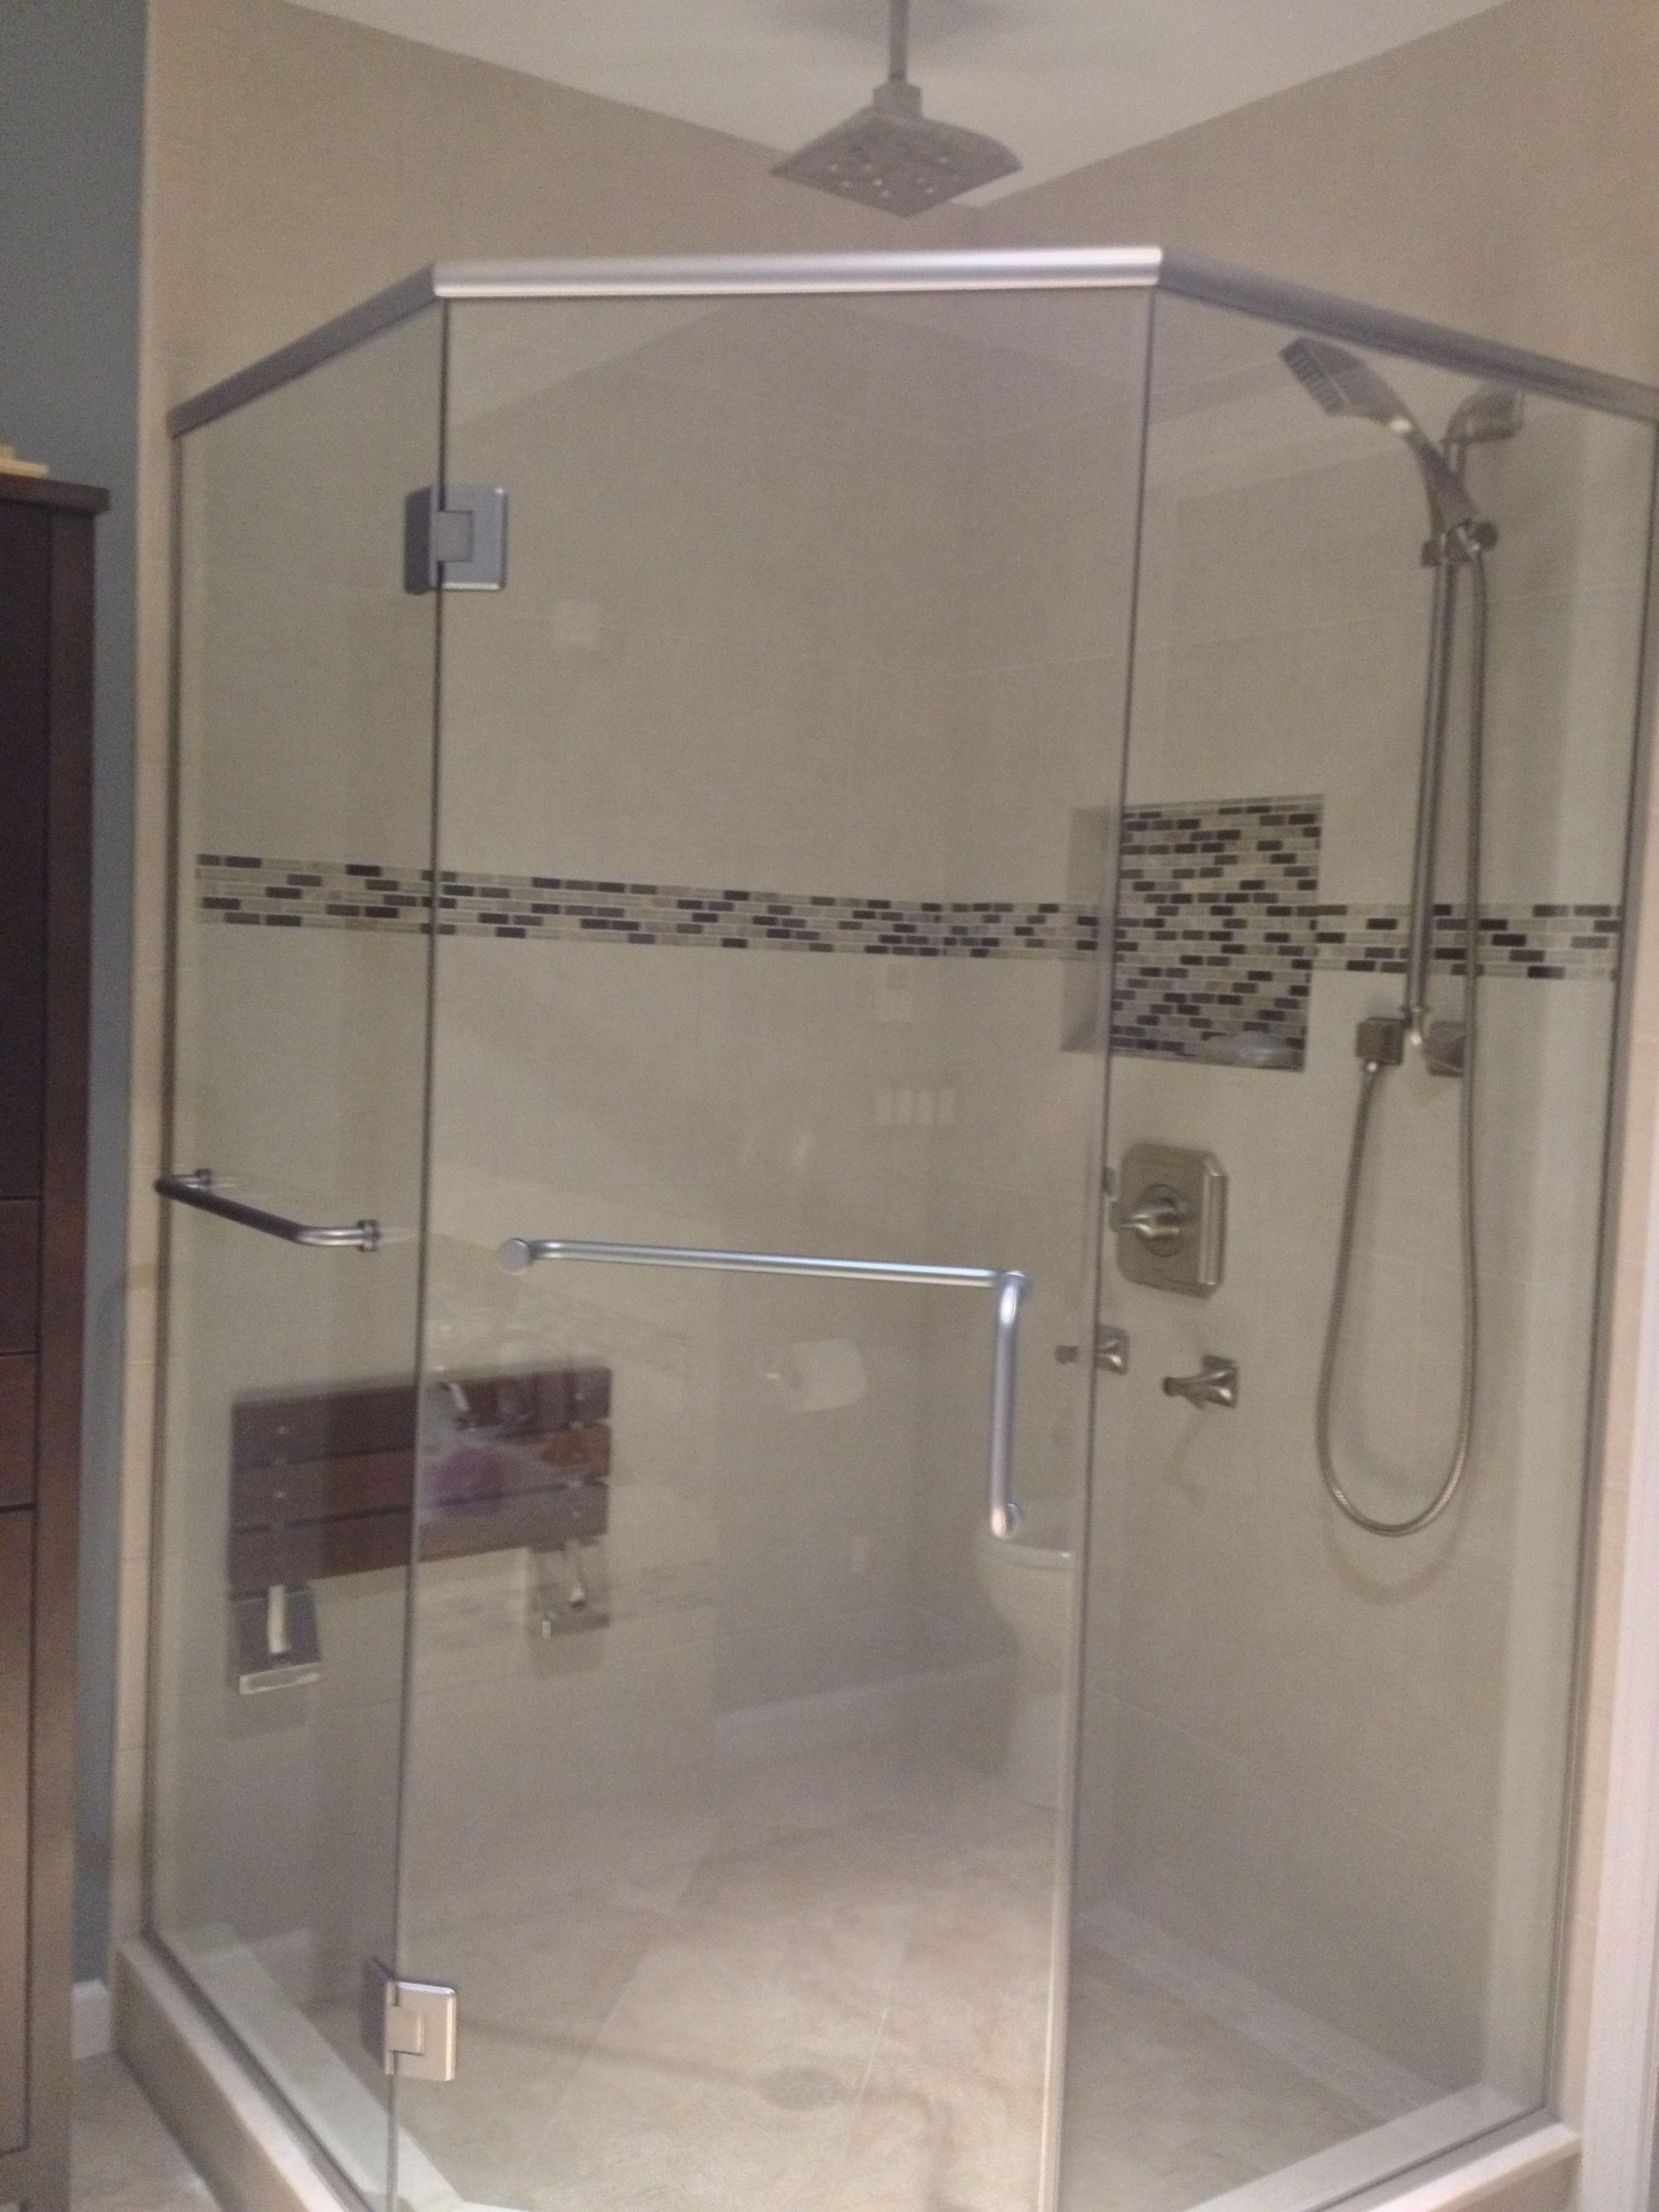 Neo Angle Shower With Teak Fold Seat Tiled Product